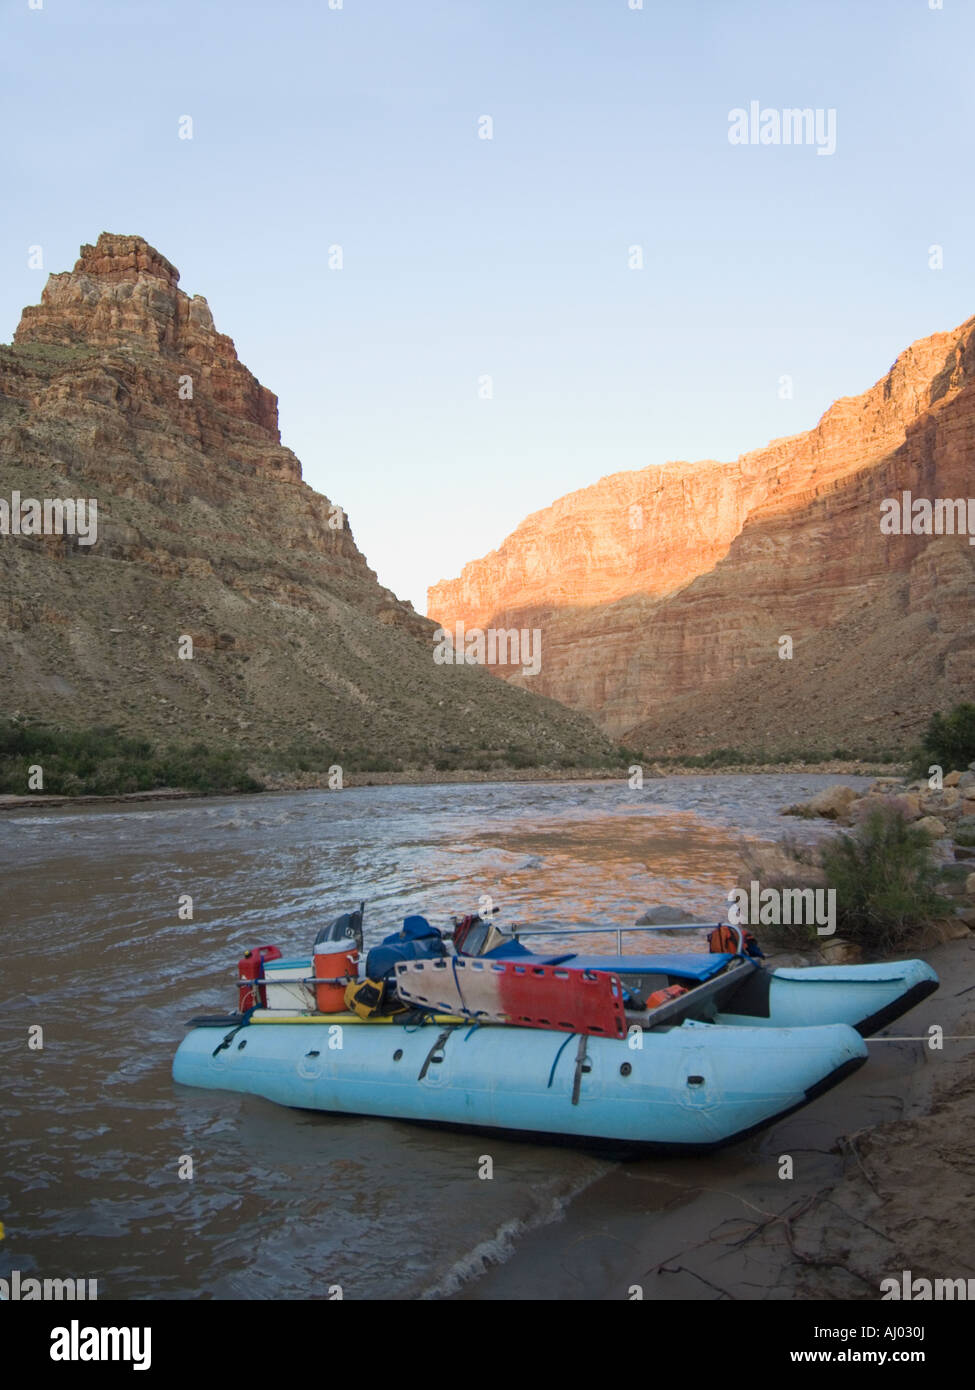 White water raft moored on river's edge, Colorado River, Moab, Utah, United States - Stock Image